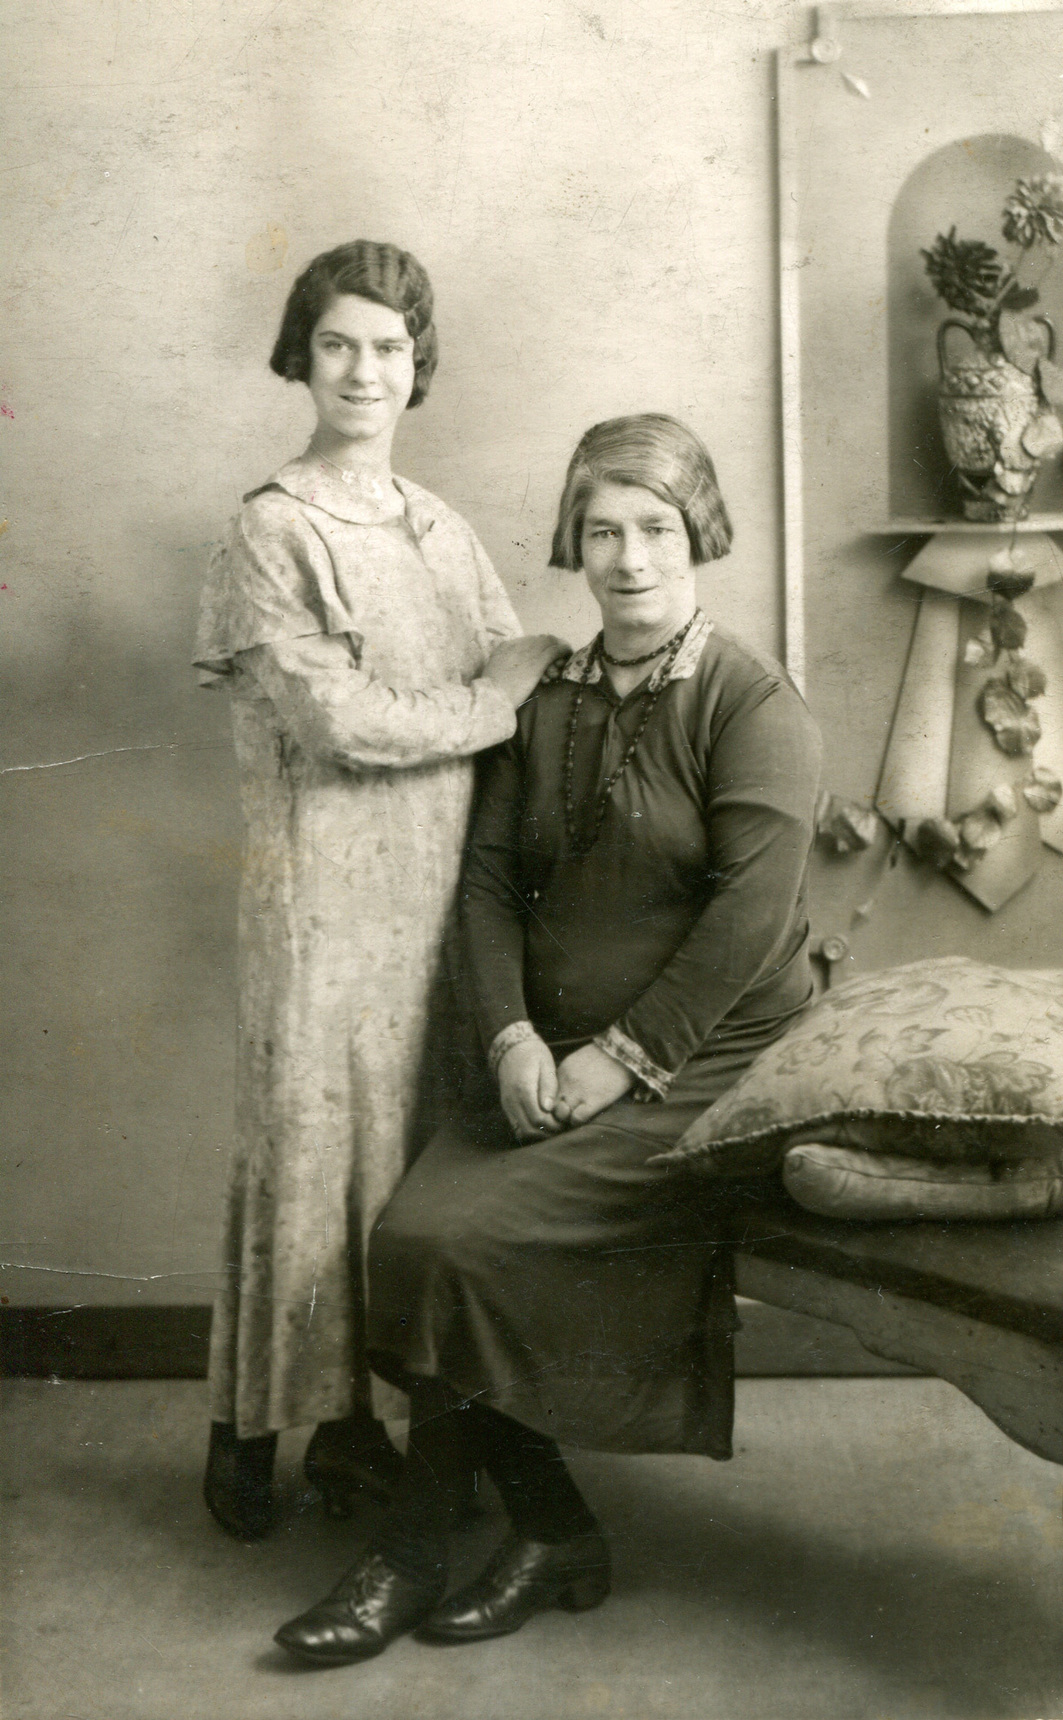 Studio Portrait Mother And Daughter, 5th February 1934